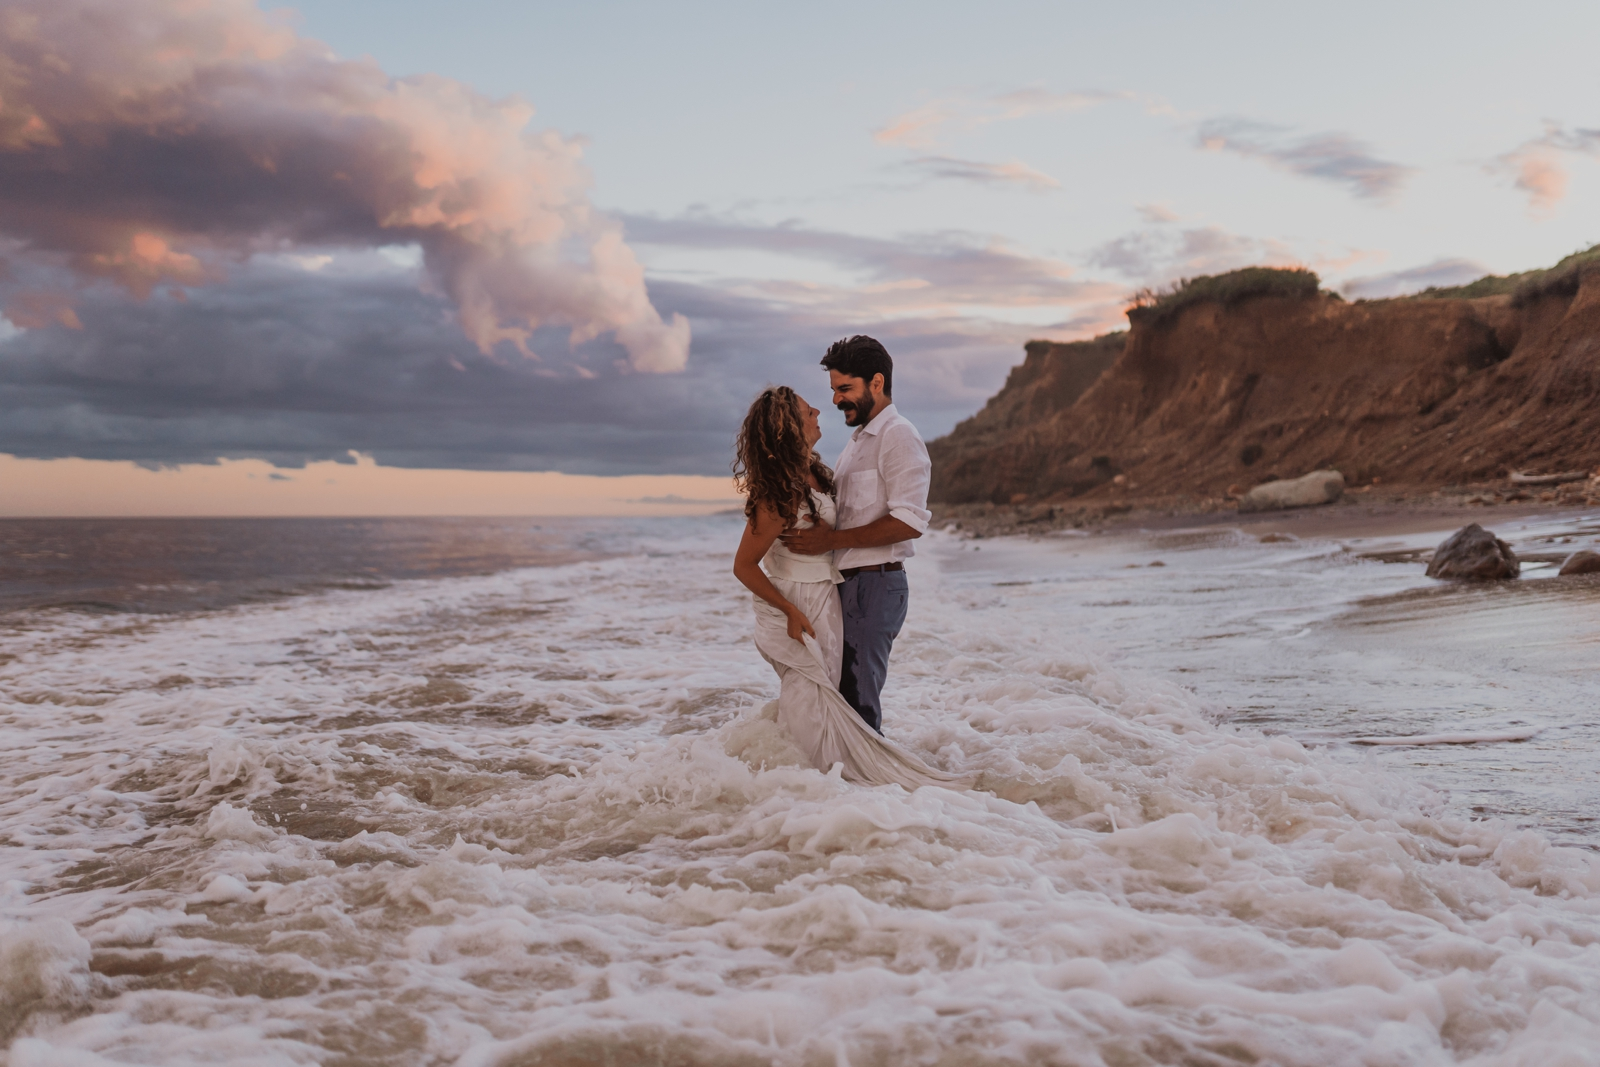 JJP_Nikki & Bud_Shadmoor_Montauk_NY_Cliff Engagement Session196.jpg_blog.jpg